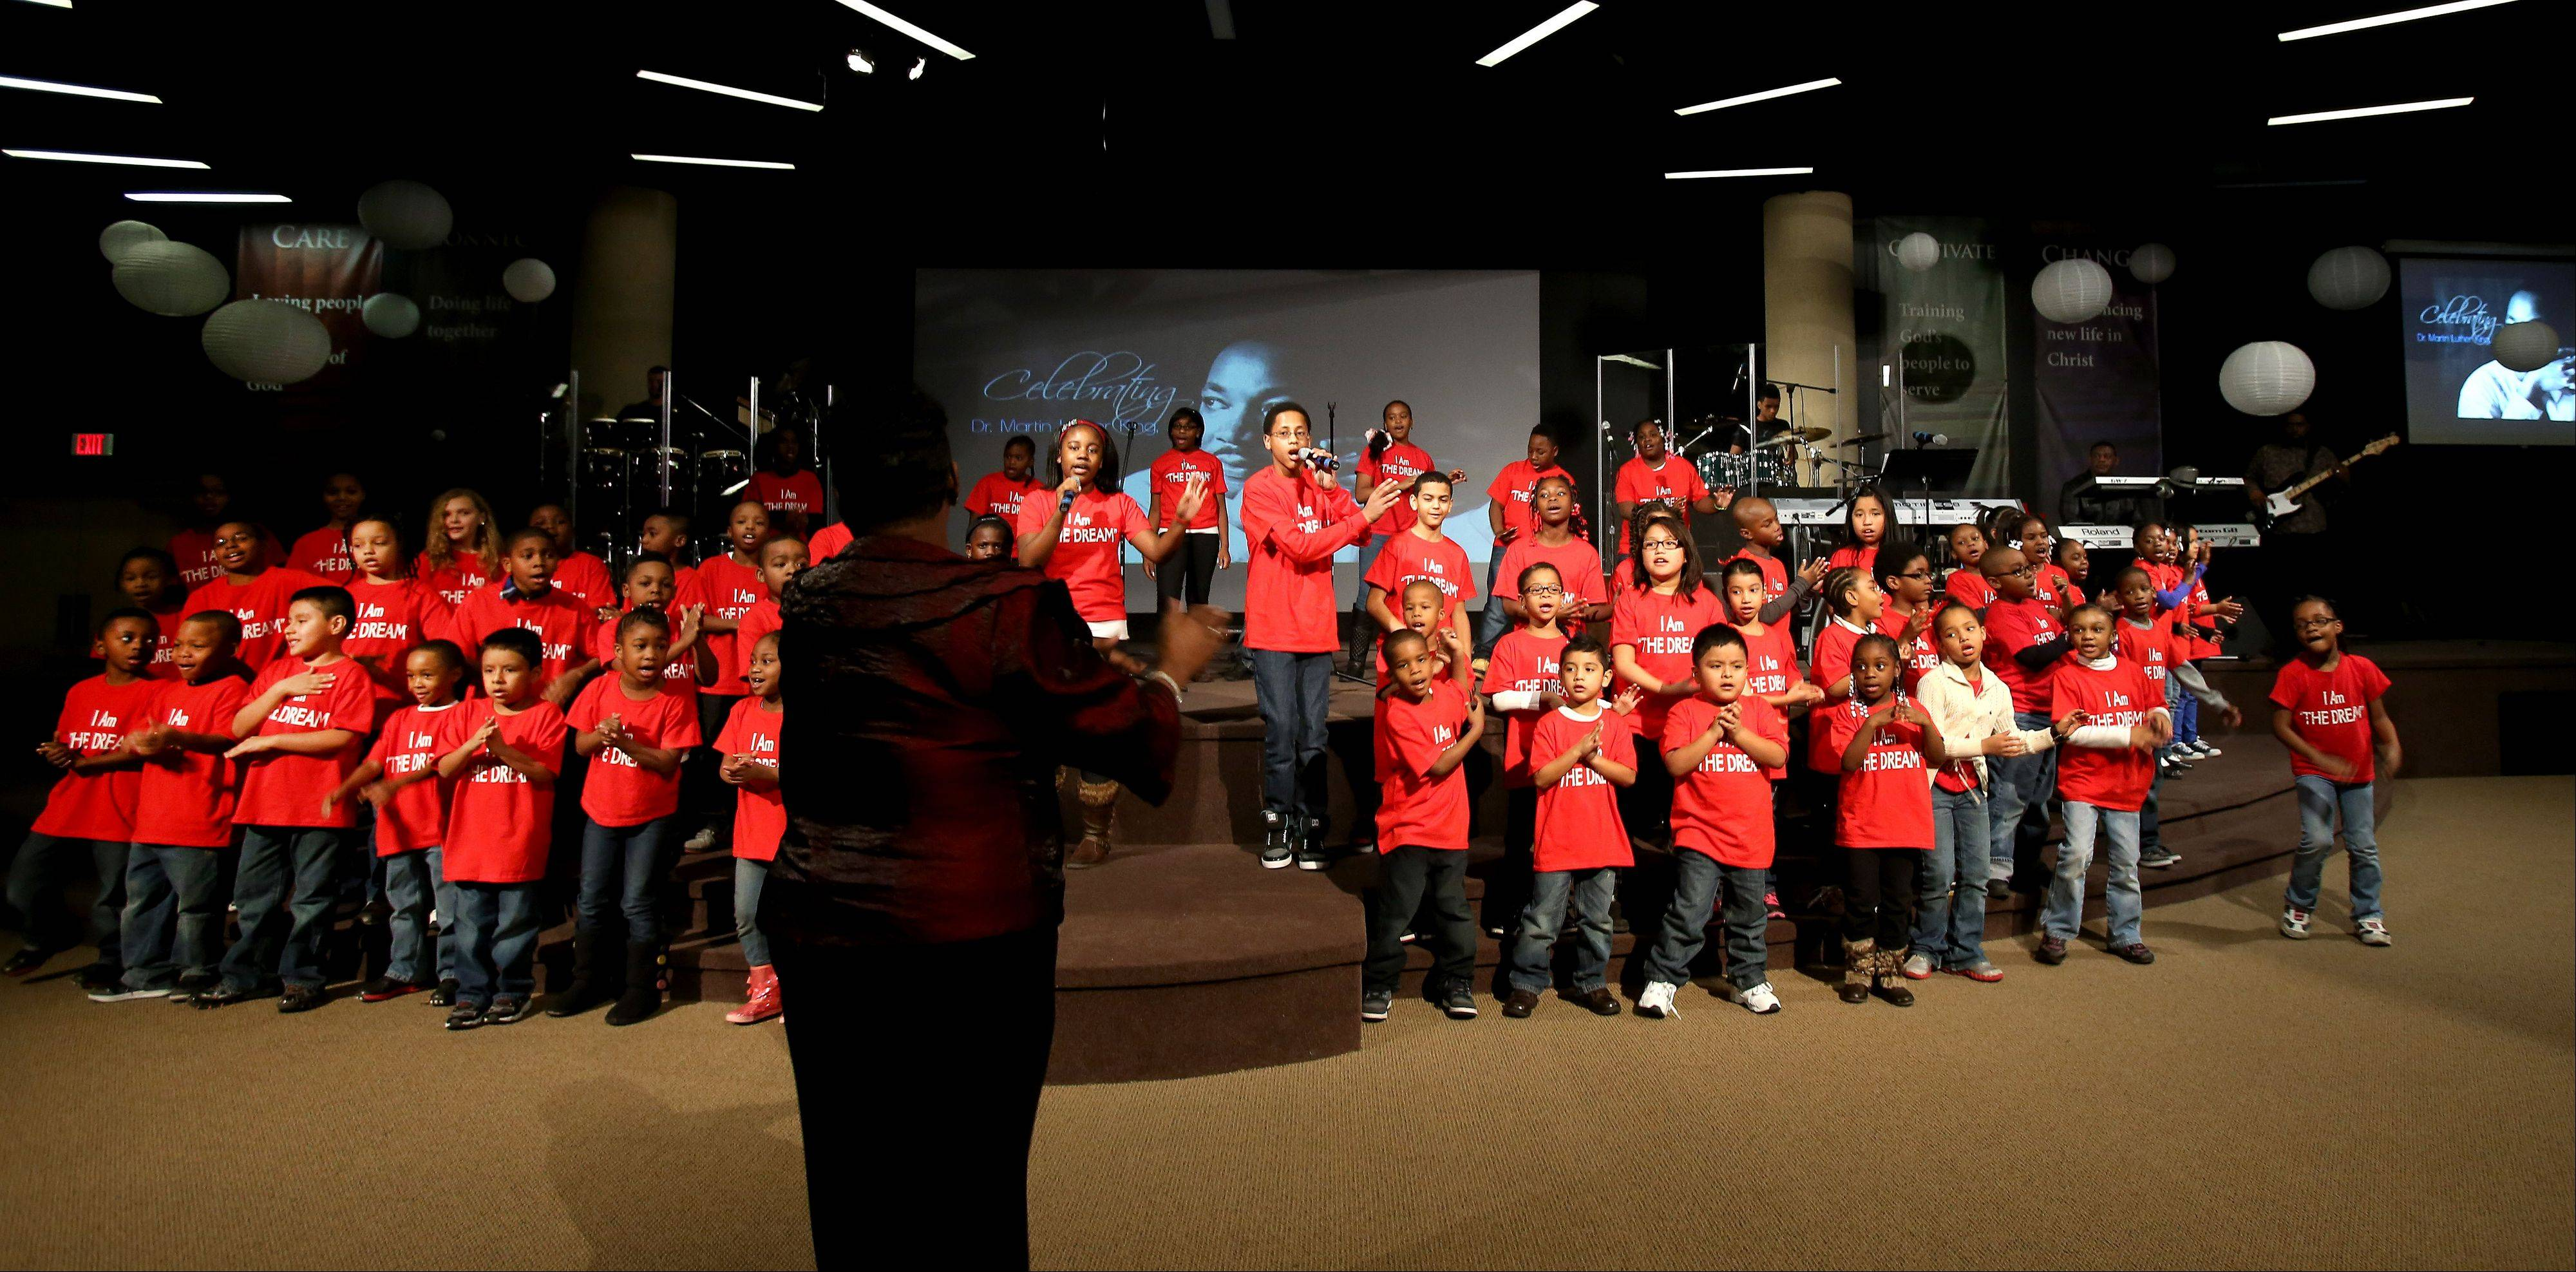 Kids making up the Carol Stream Community Choir perform at the Martin Luther King Jr. Day celebration at the Wheaton Christian Center in Carol Stream on Monday.